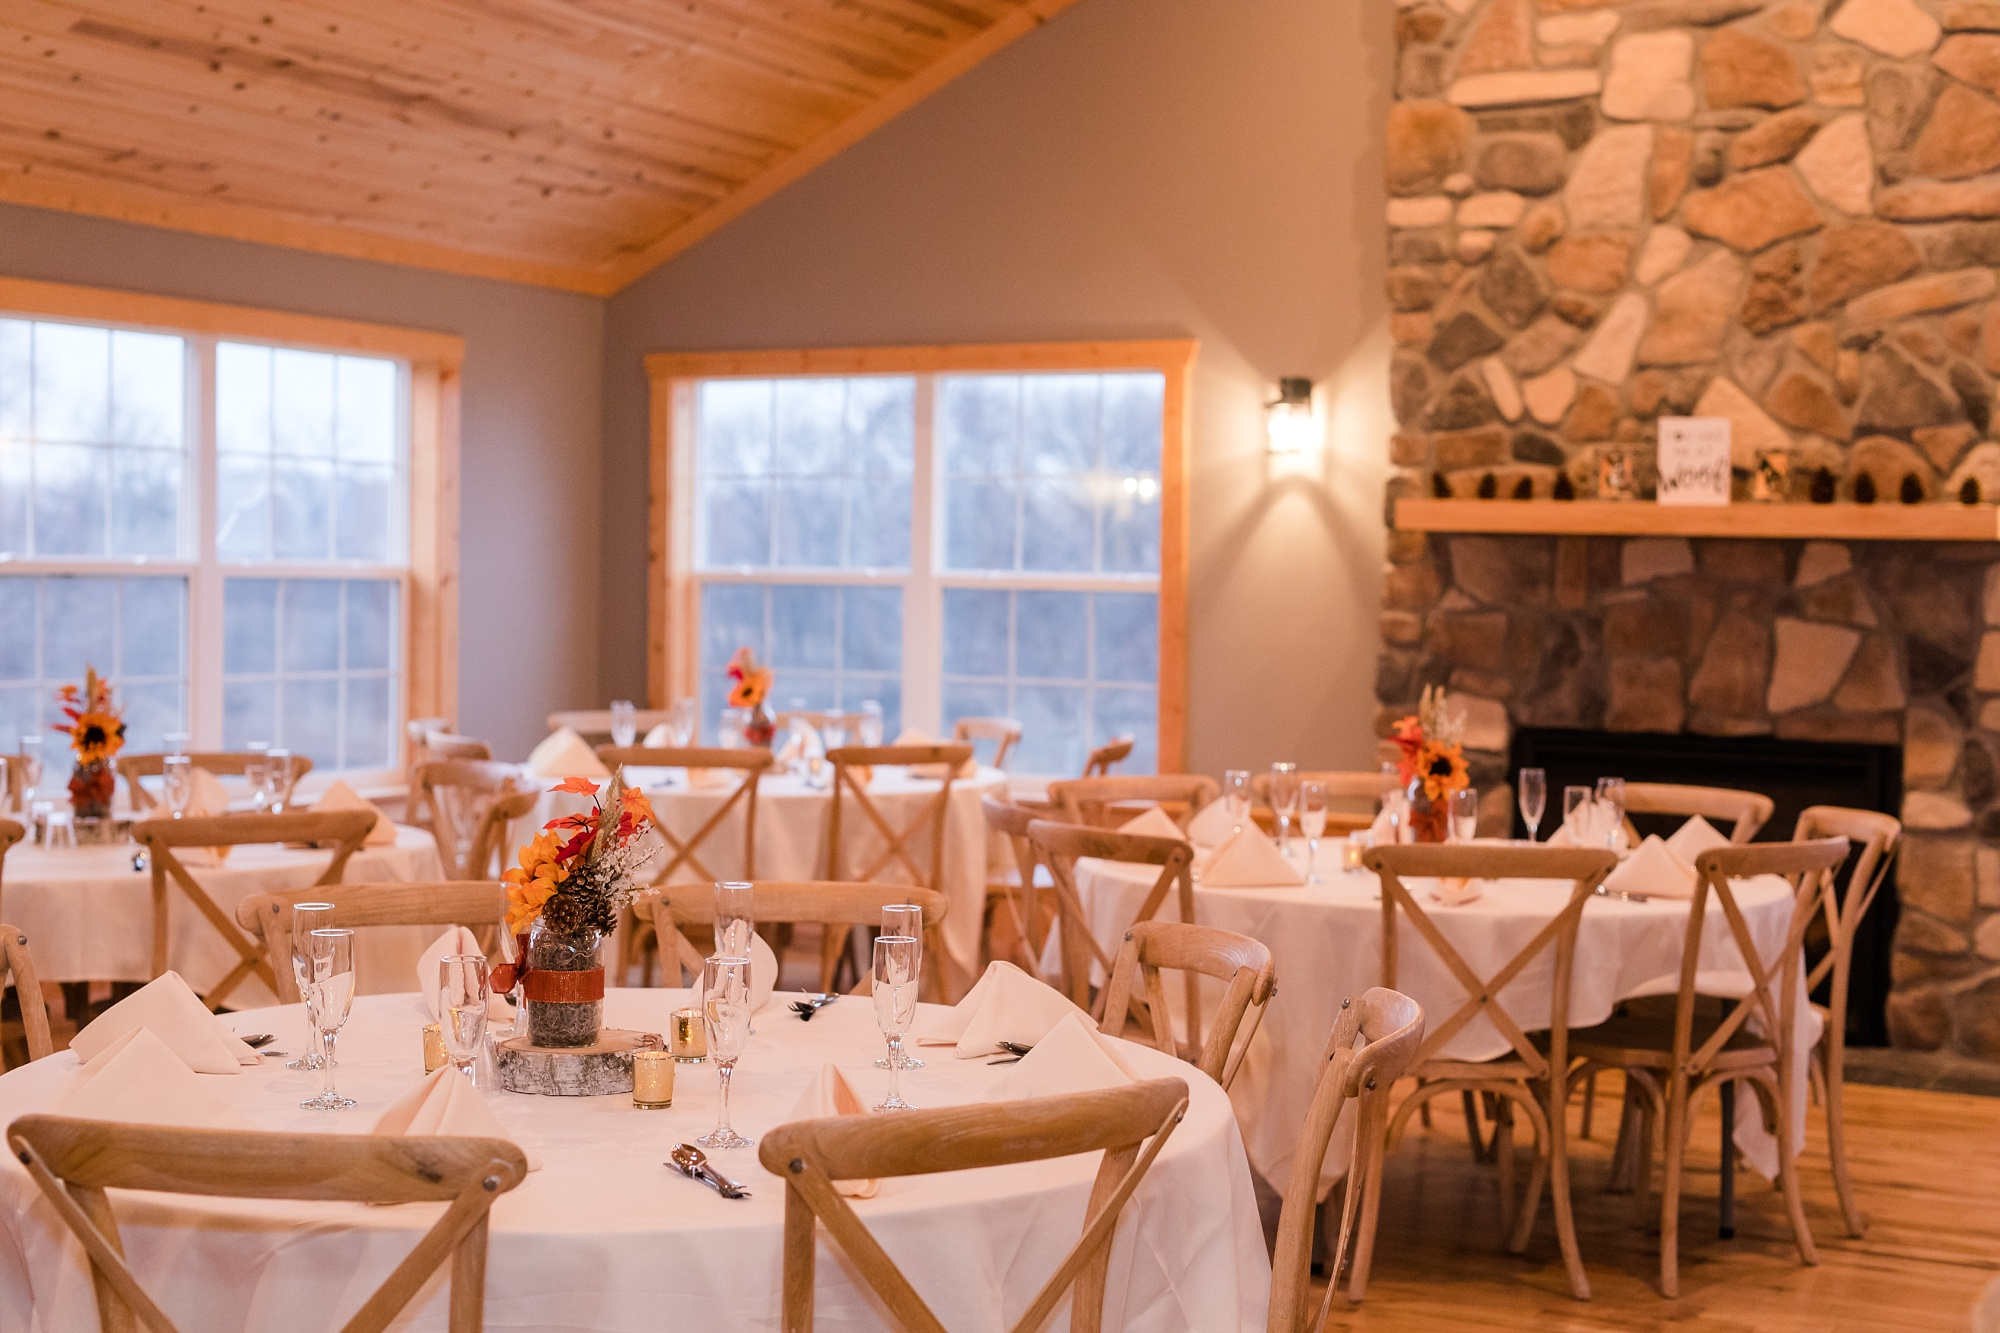 Amber Langerud_Rustic Oaks, MN winter barn wedding_0555.jpg